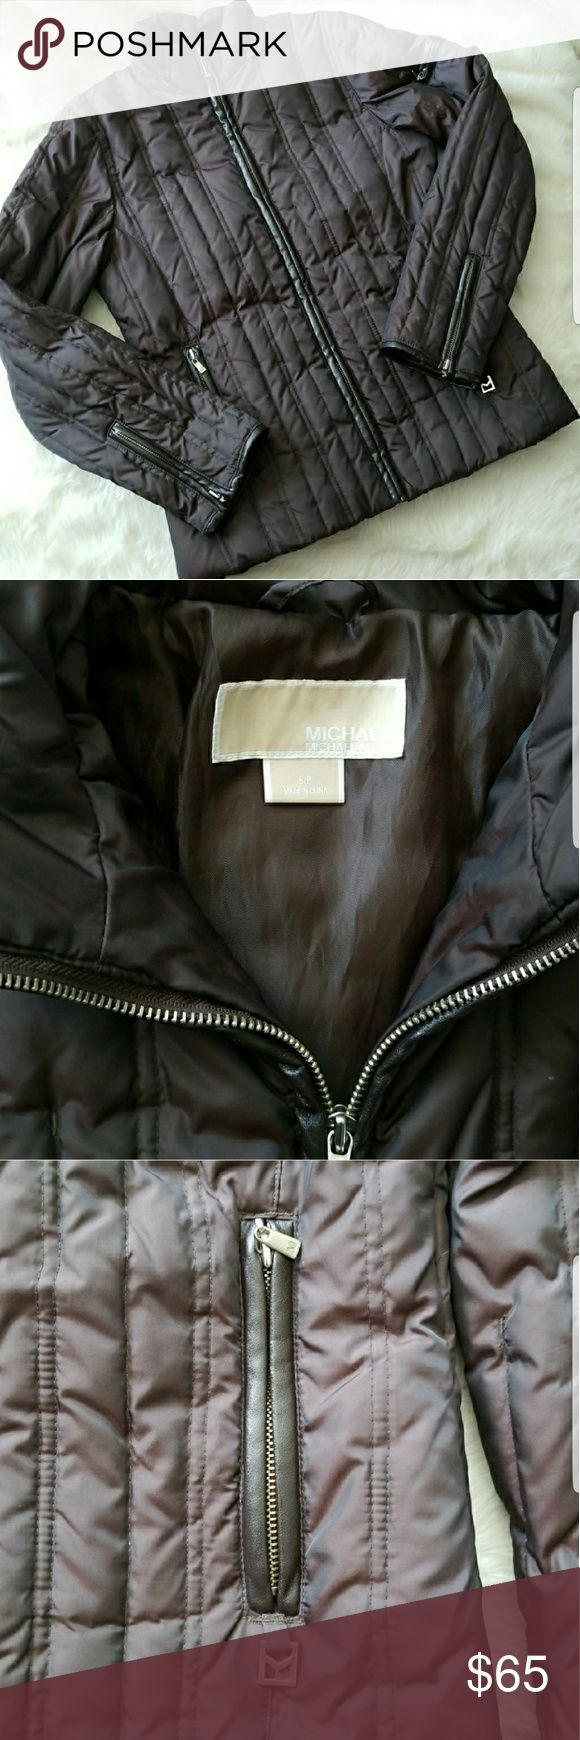 LOWBALL ME! Michael Kors Puffer Coat Brown puffer jacket from Michael Kors filled with 55% down and 45% waterfowl feathers.  Missing the fur hood and string on the inside to bunch but overall excellent condition! Size Small petite Michael Kors Jackets & Coats Puffers